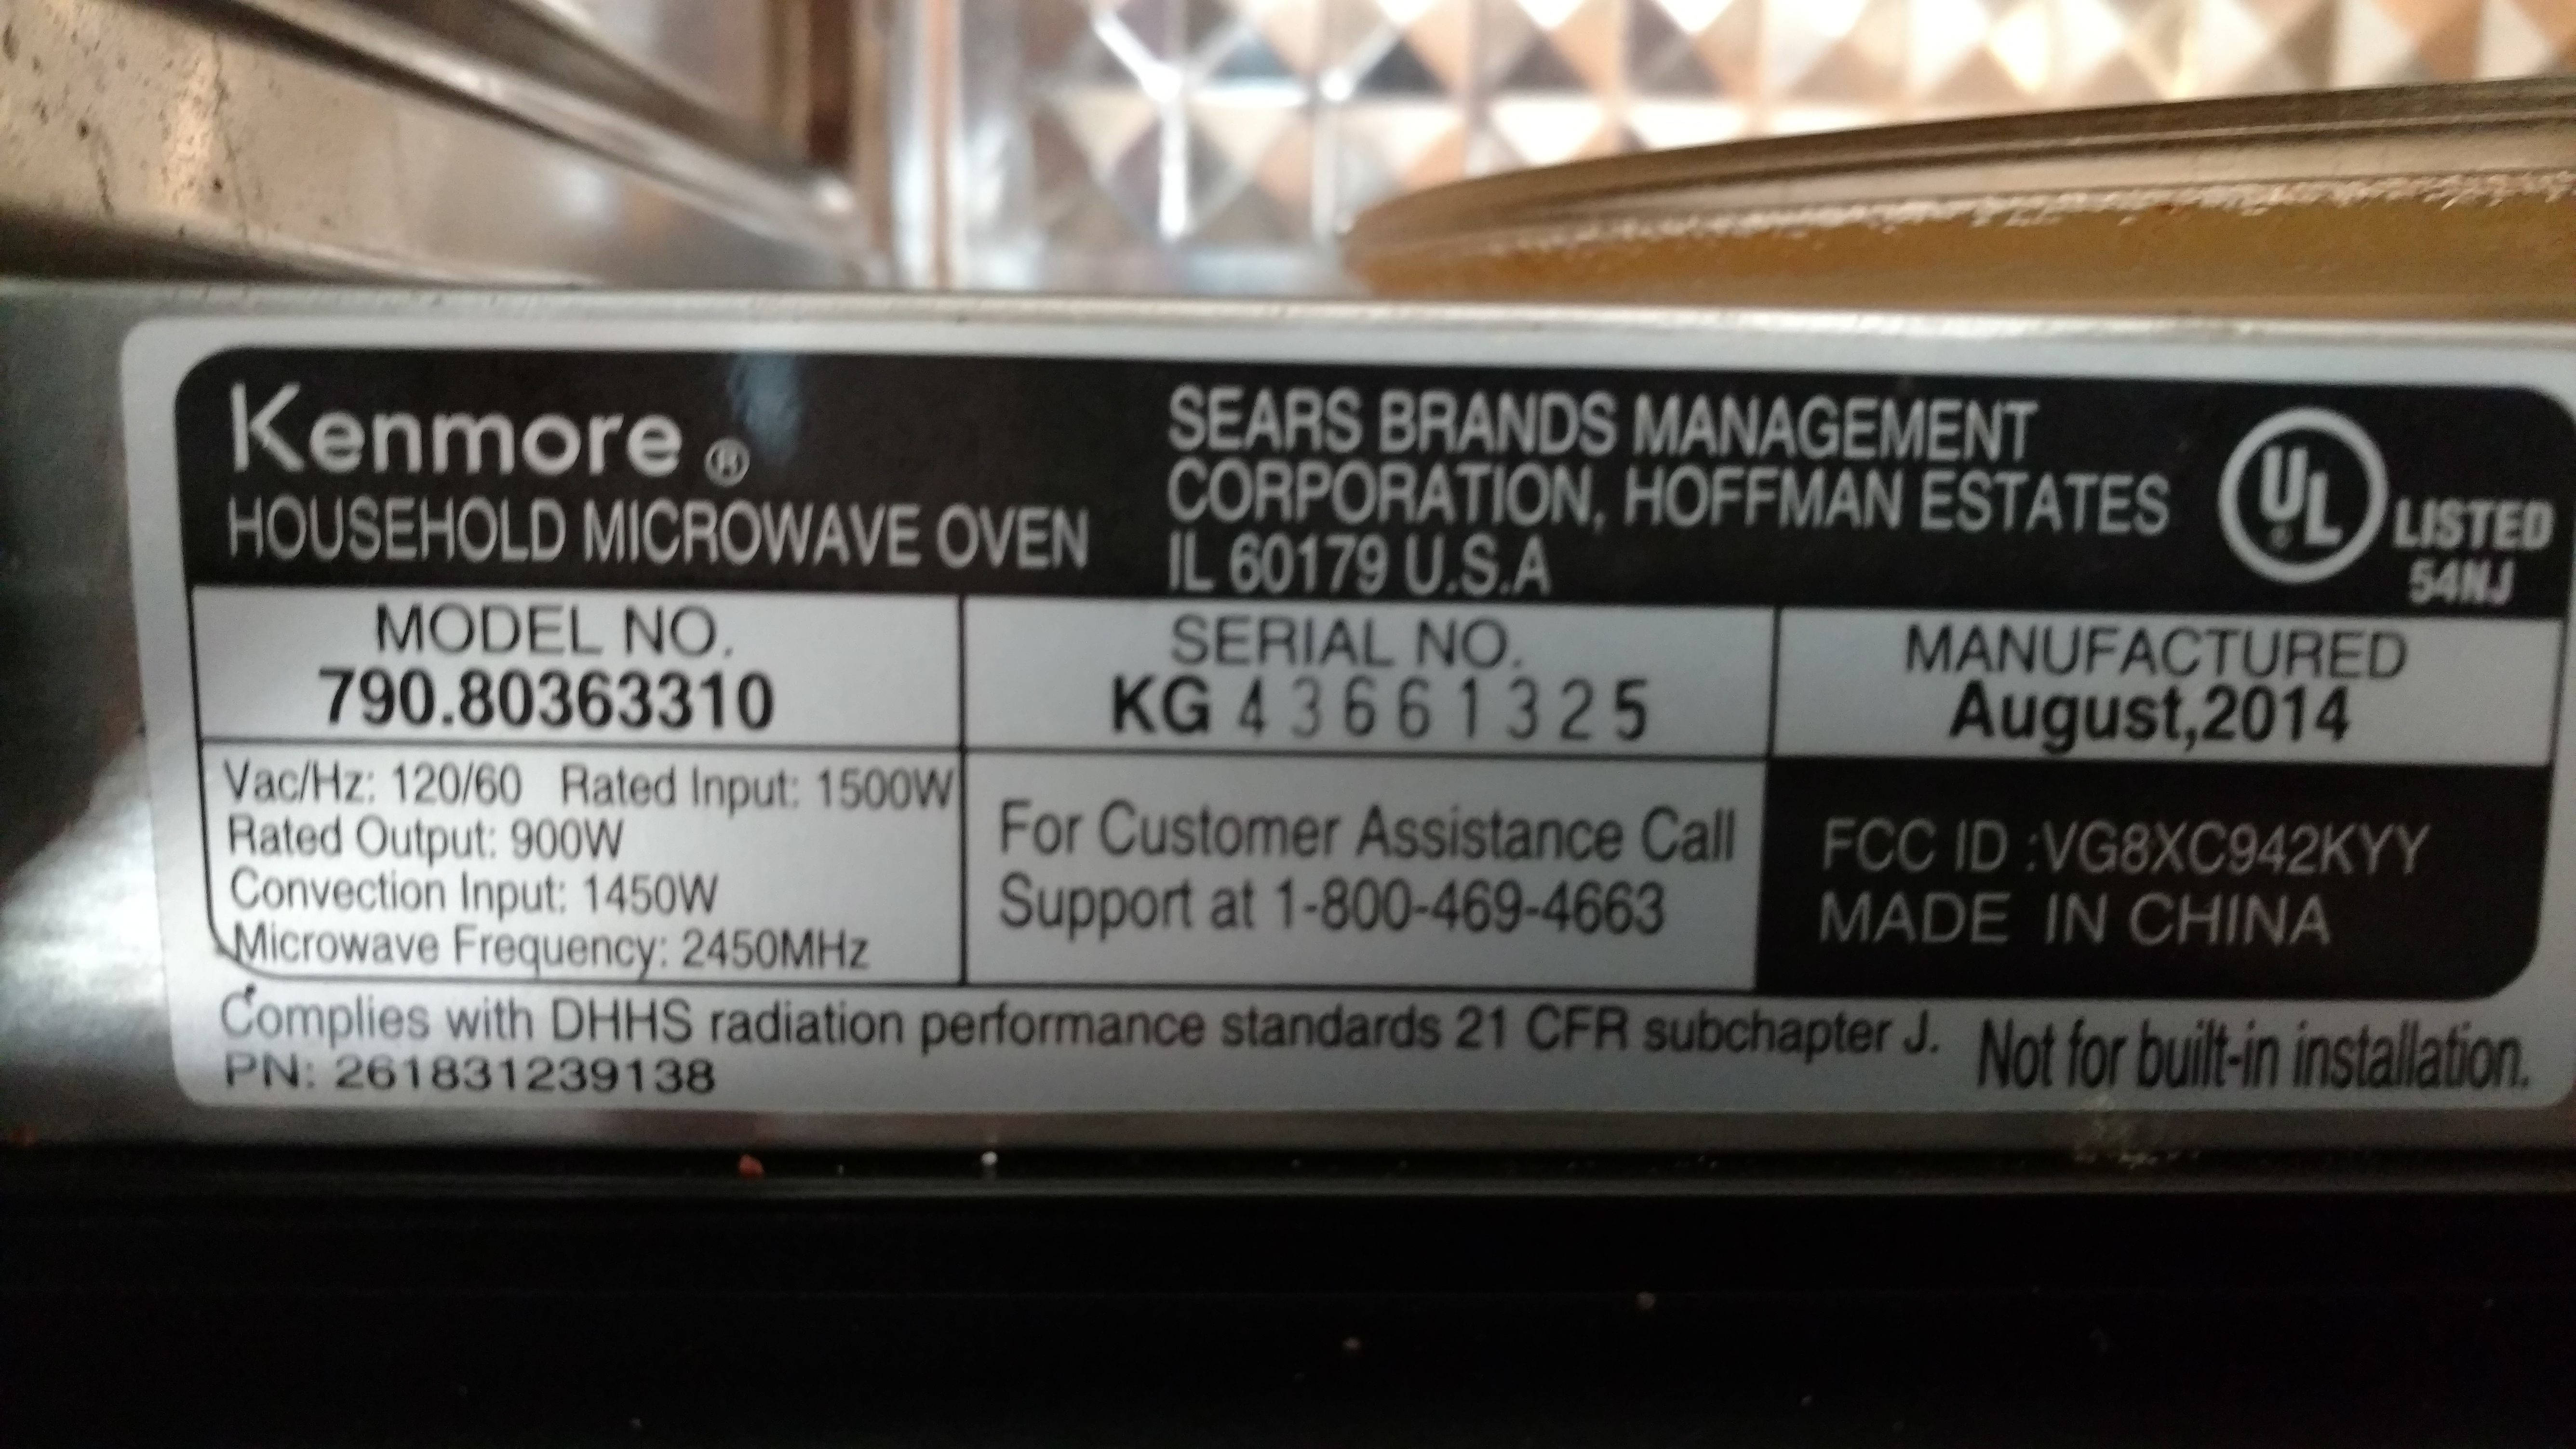 Top 39 Reviews And Complaints About Kenmore Microwave